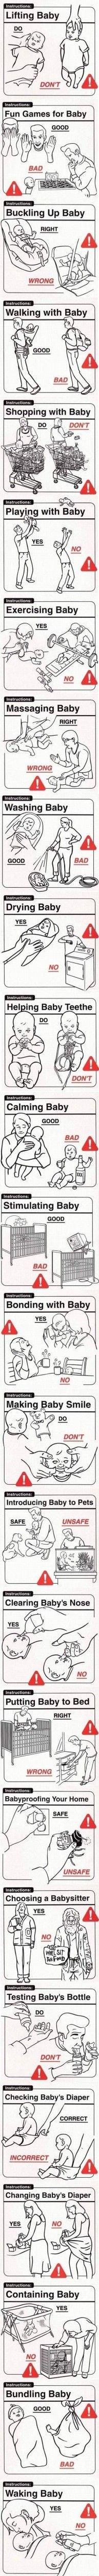 Baby Handling Techniques